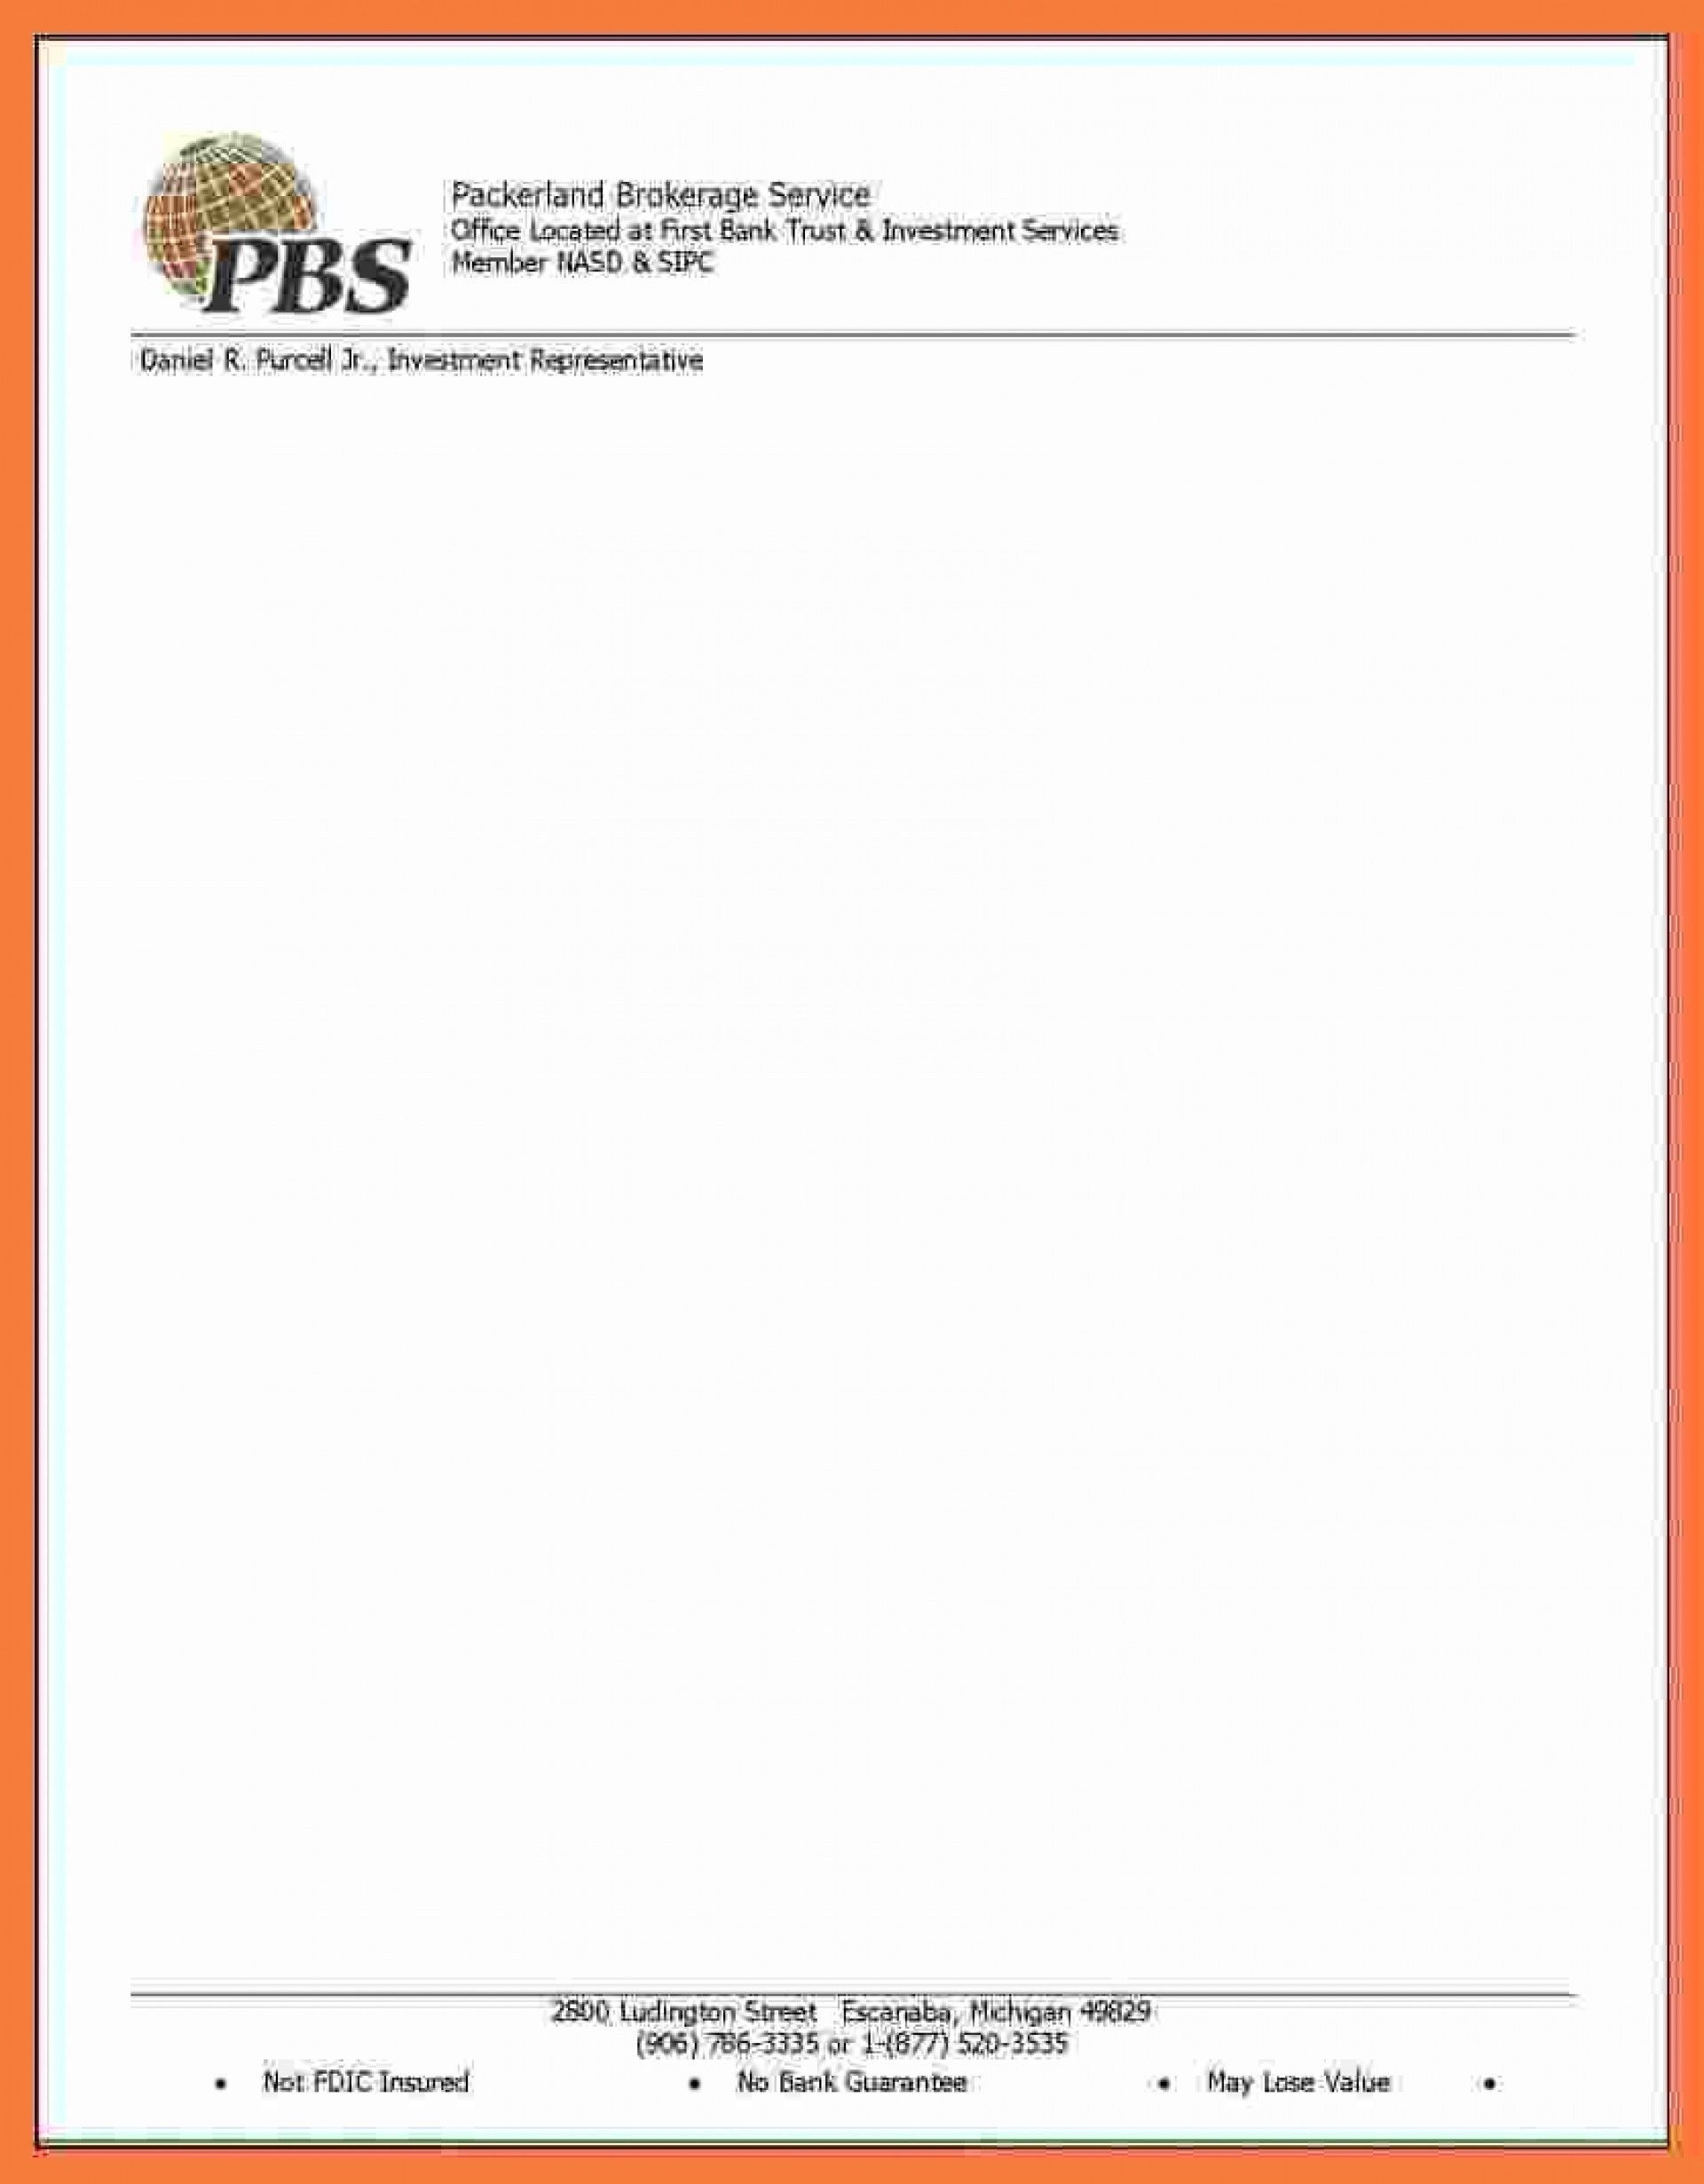 001 Remarkable Letterhead Sample Free Download Inspiration  Construction Company TemplateFull